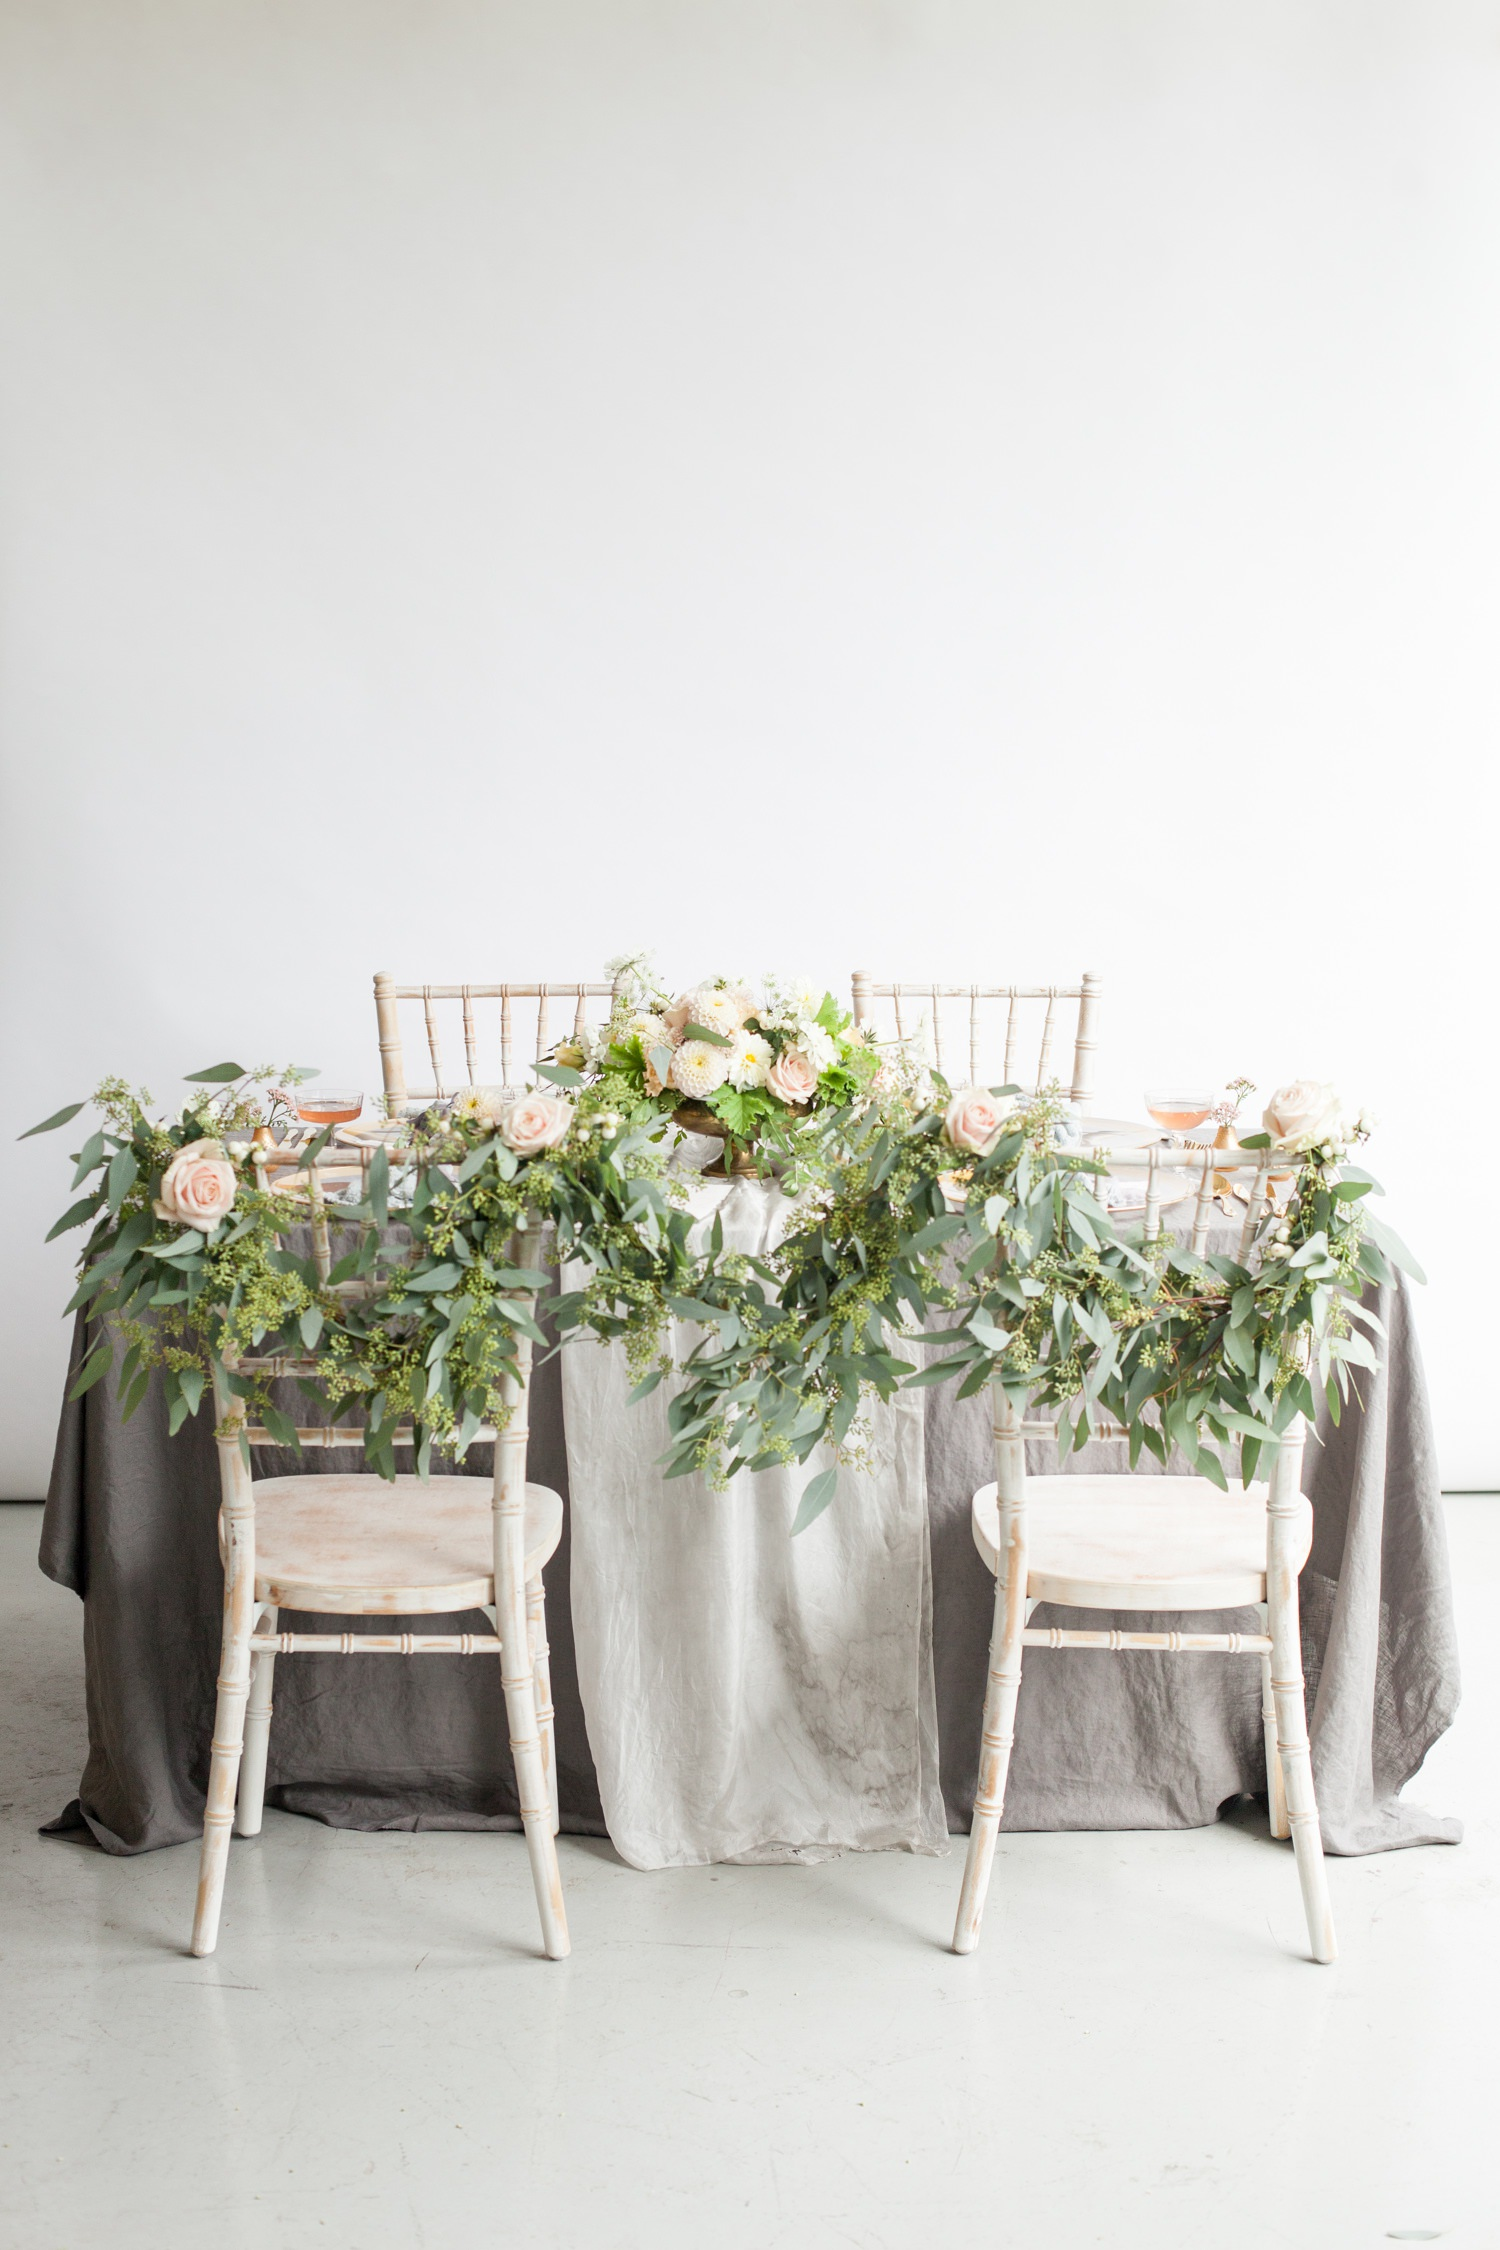 personal branding photoshoot for Stone & Co. a styled wedding breakfast table